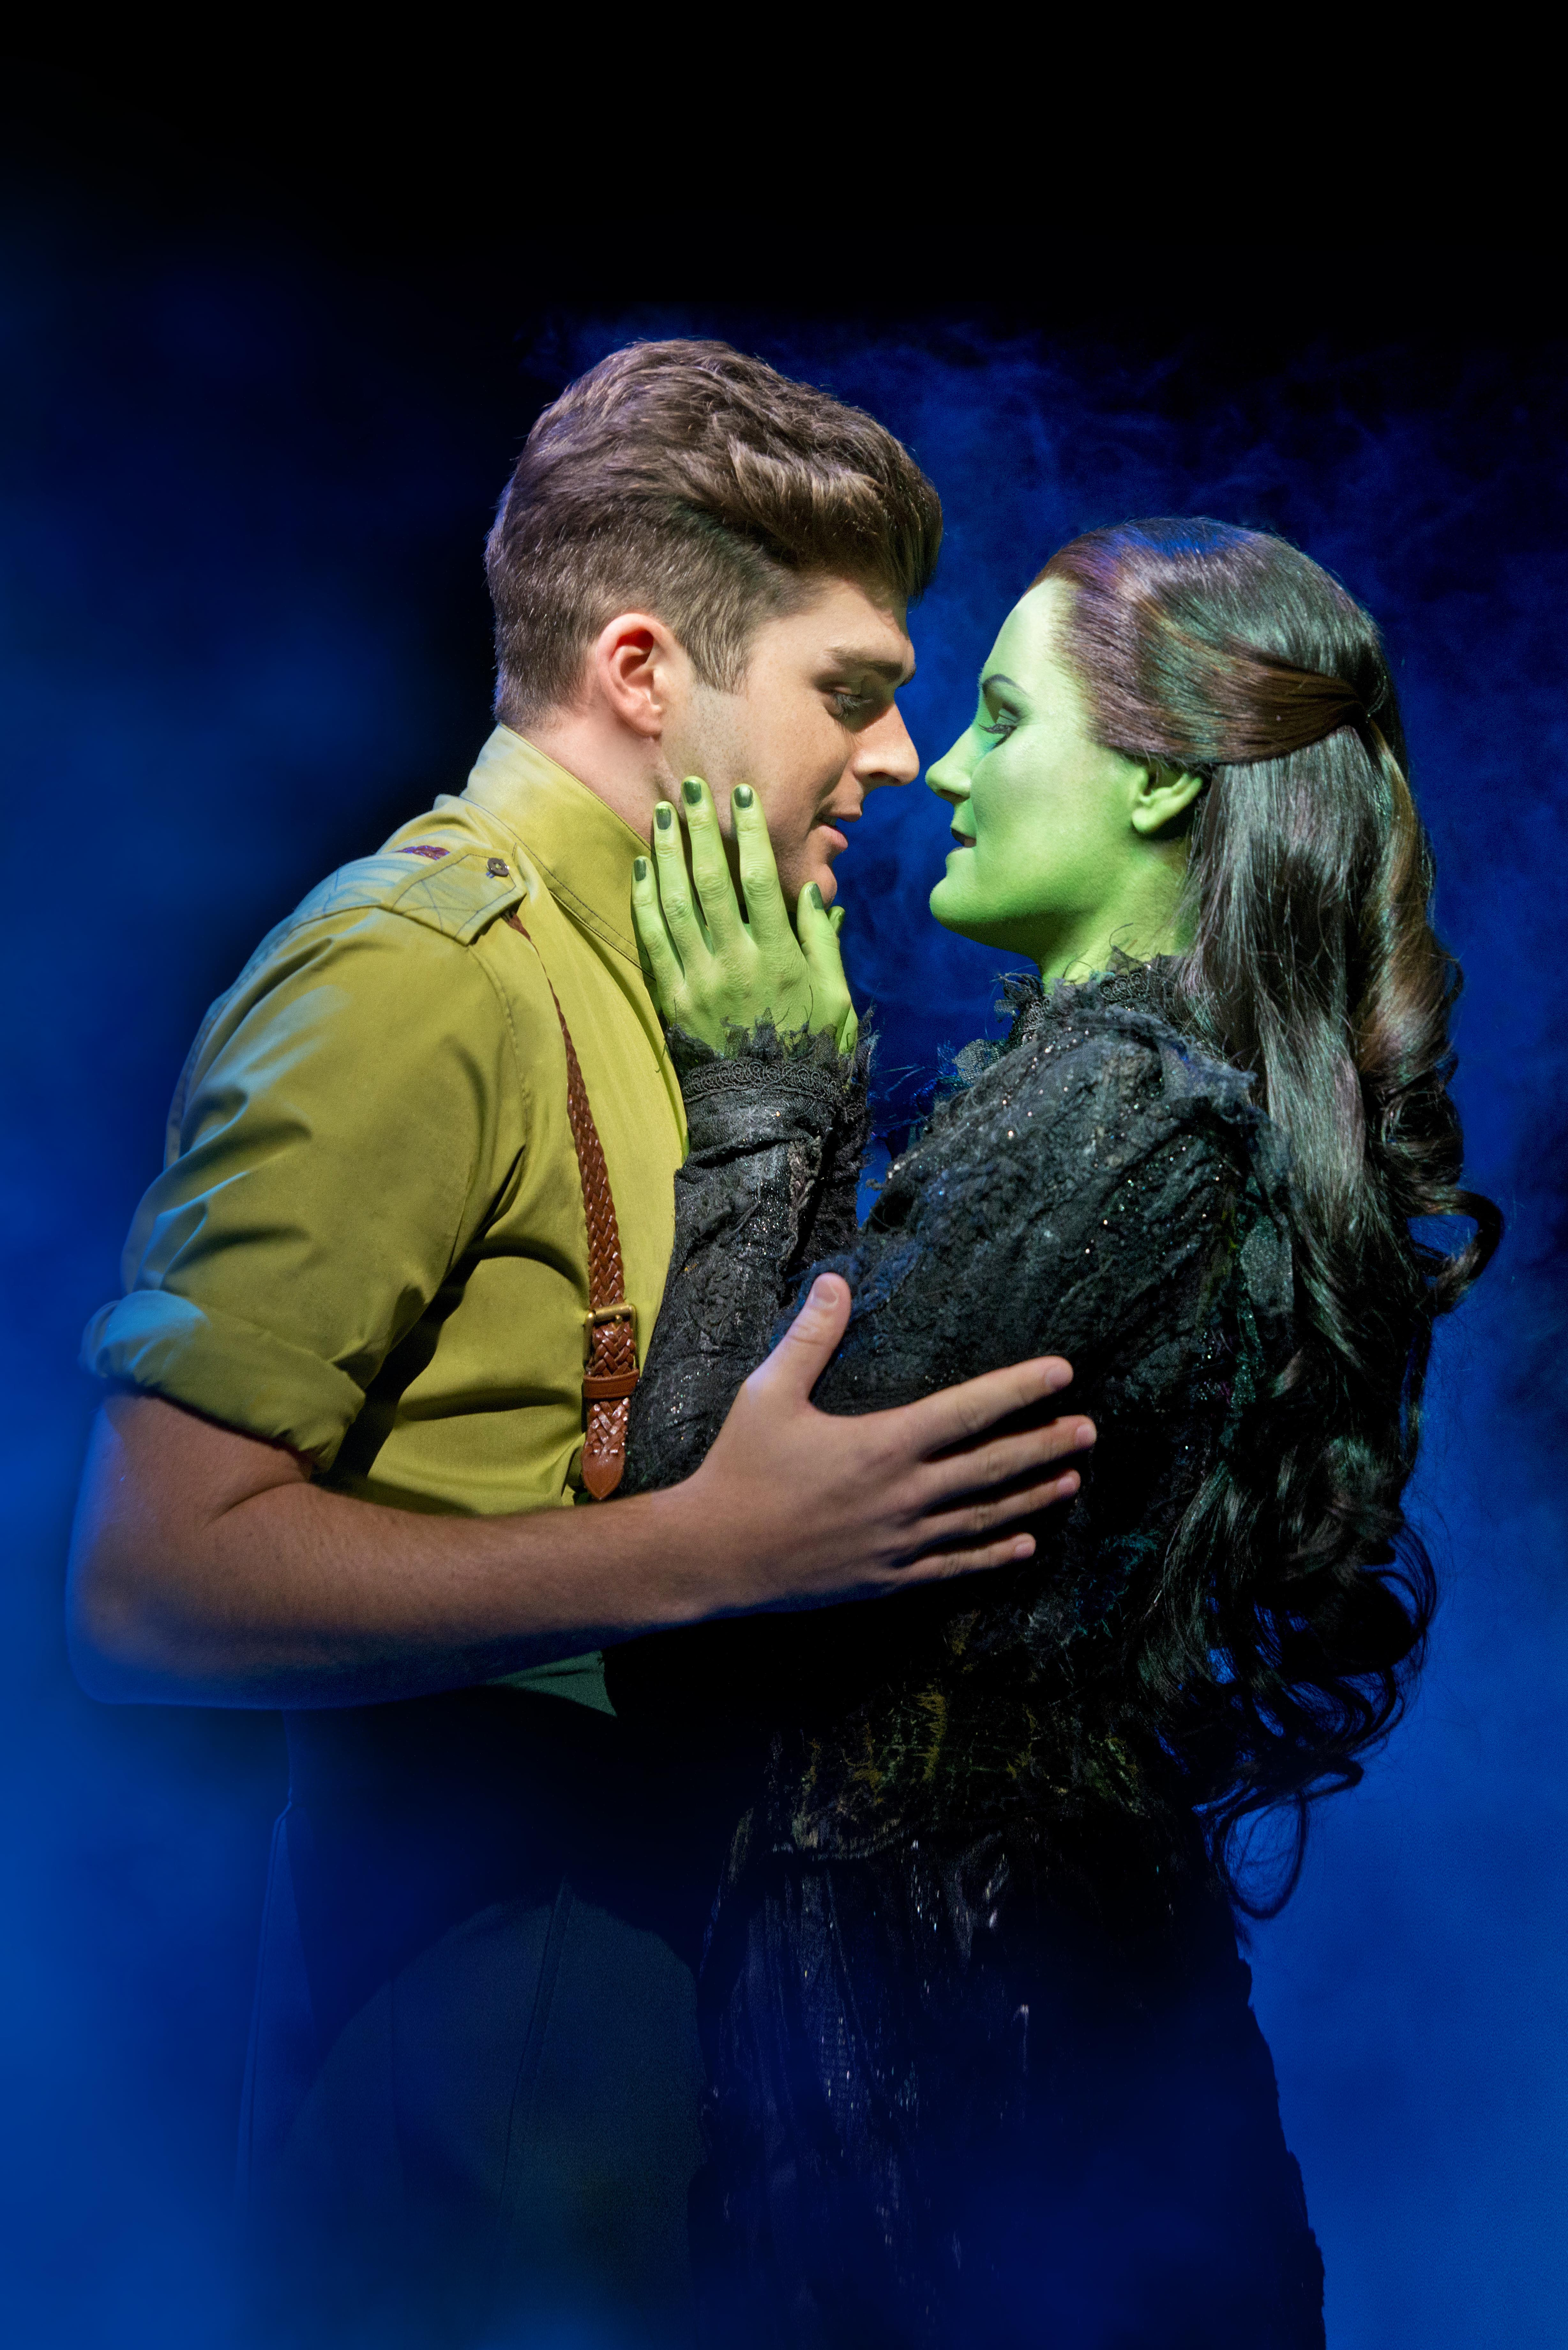 Nessarose Wicked Tour